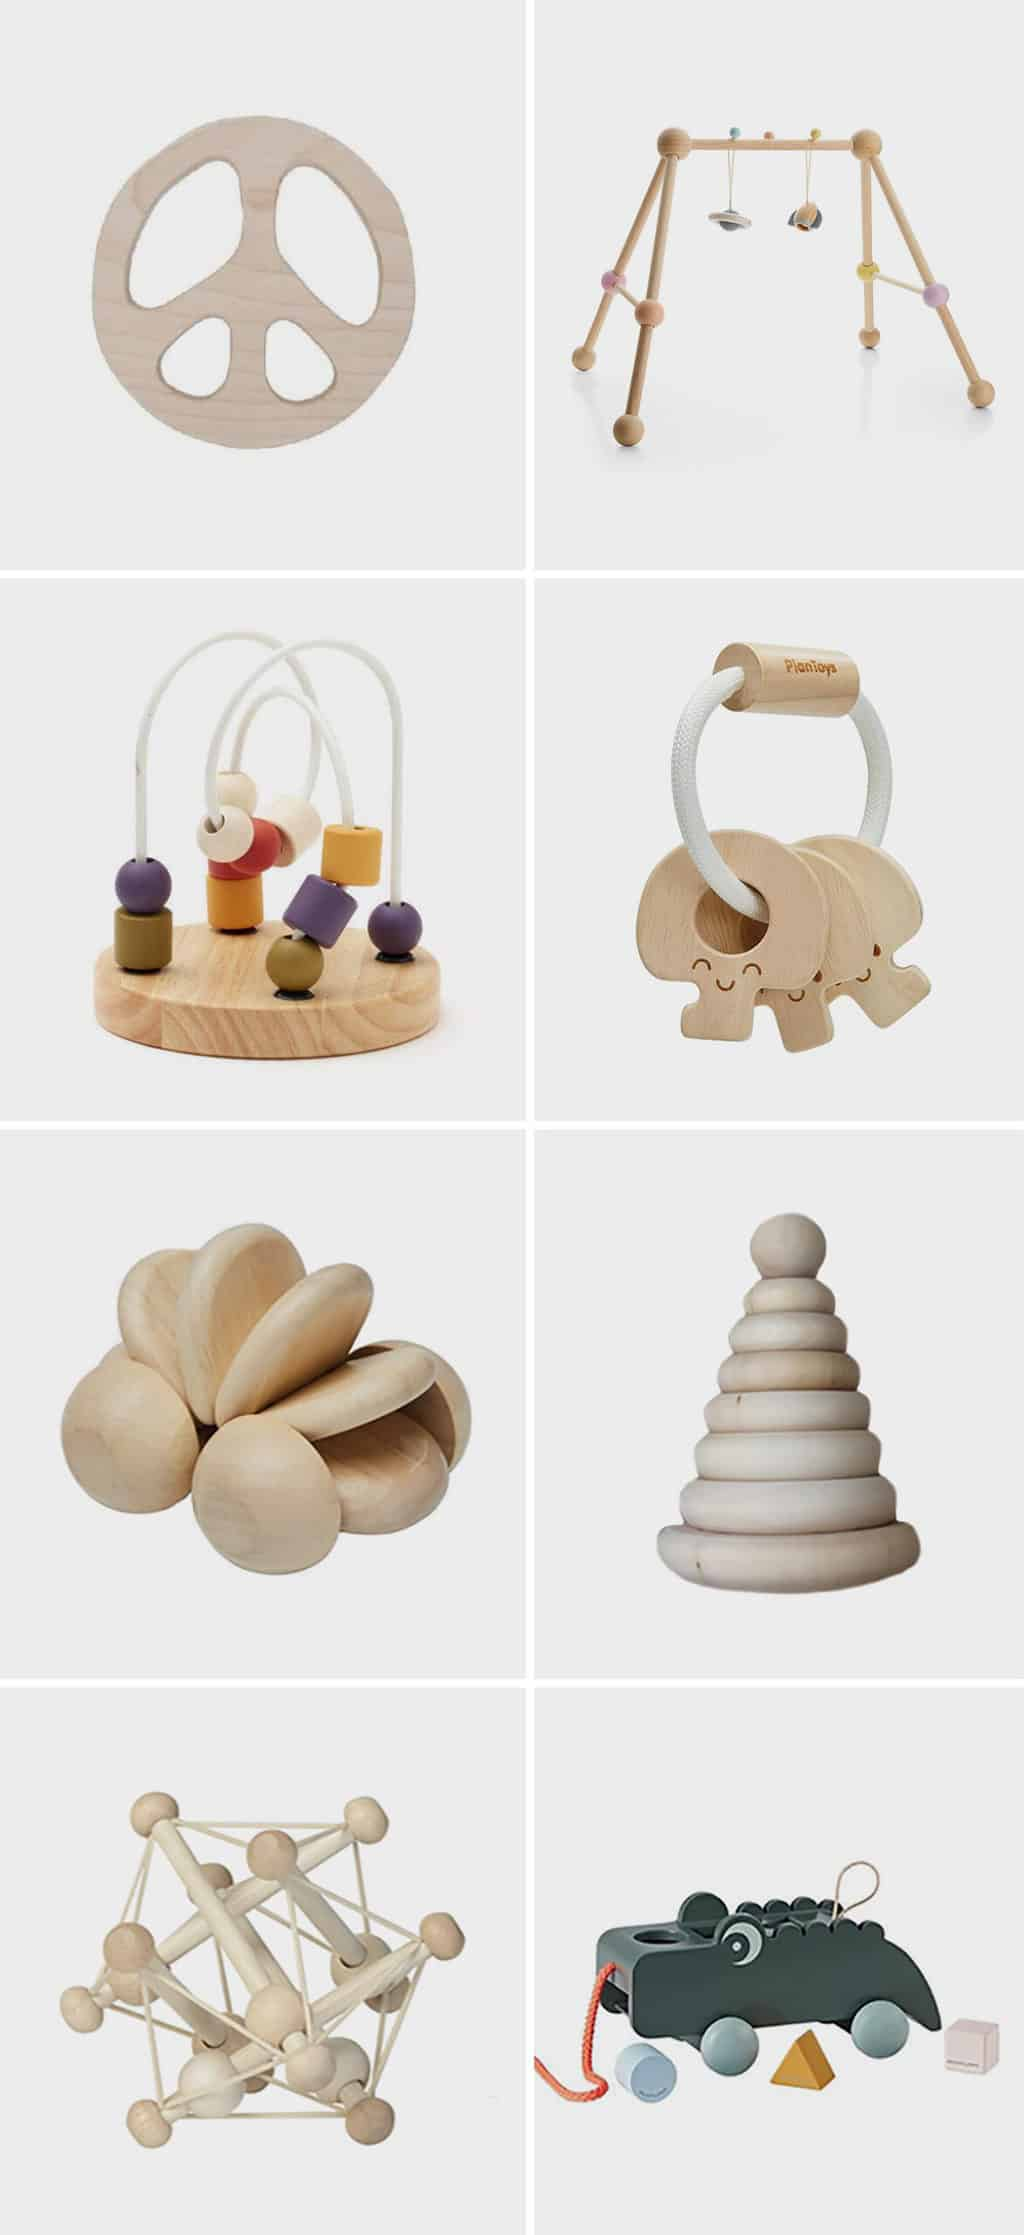 Image of various wooden toys for babies, featuring a peace sign teether, wooden play gym, wooden keys, and more.